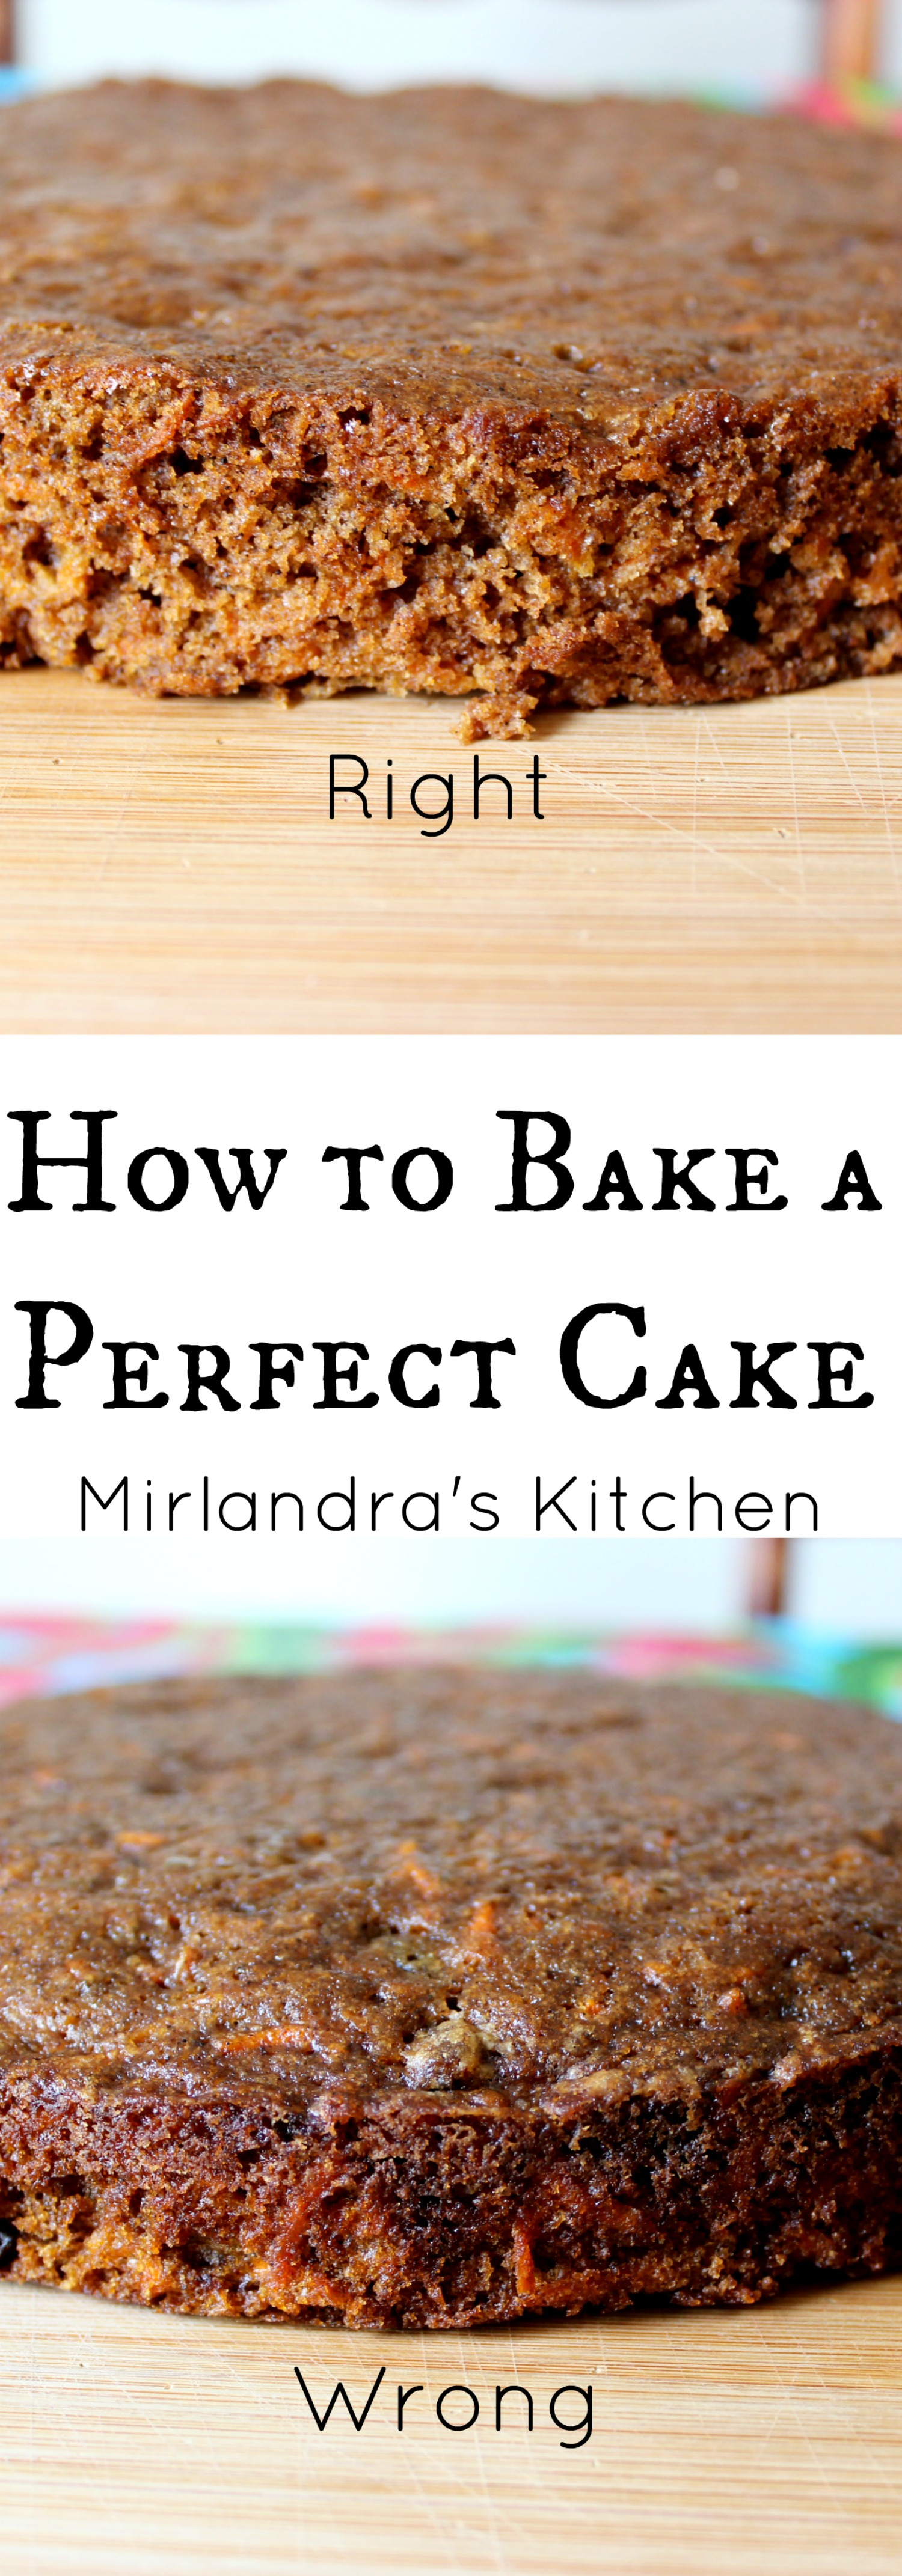 Bake Cake With Wet Towel